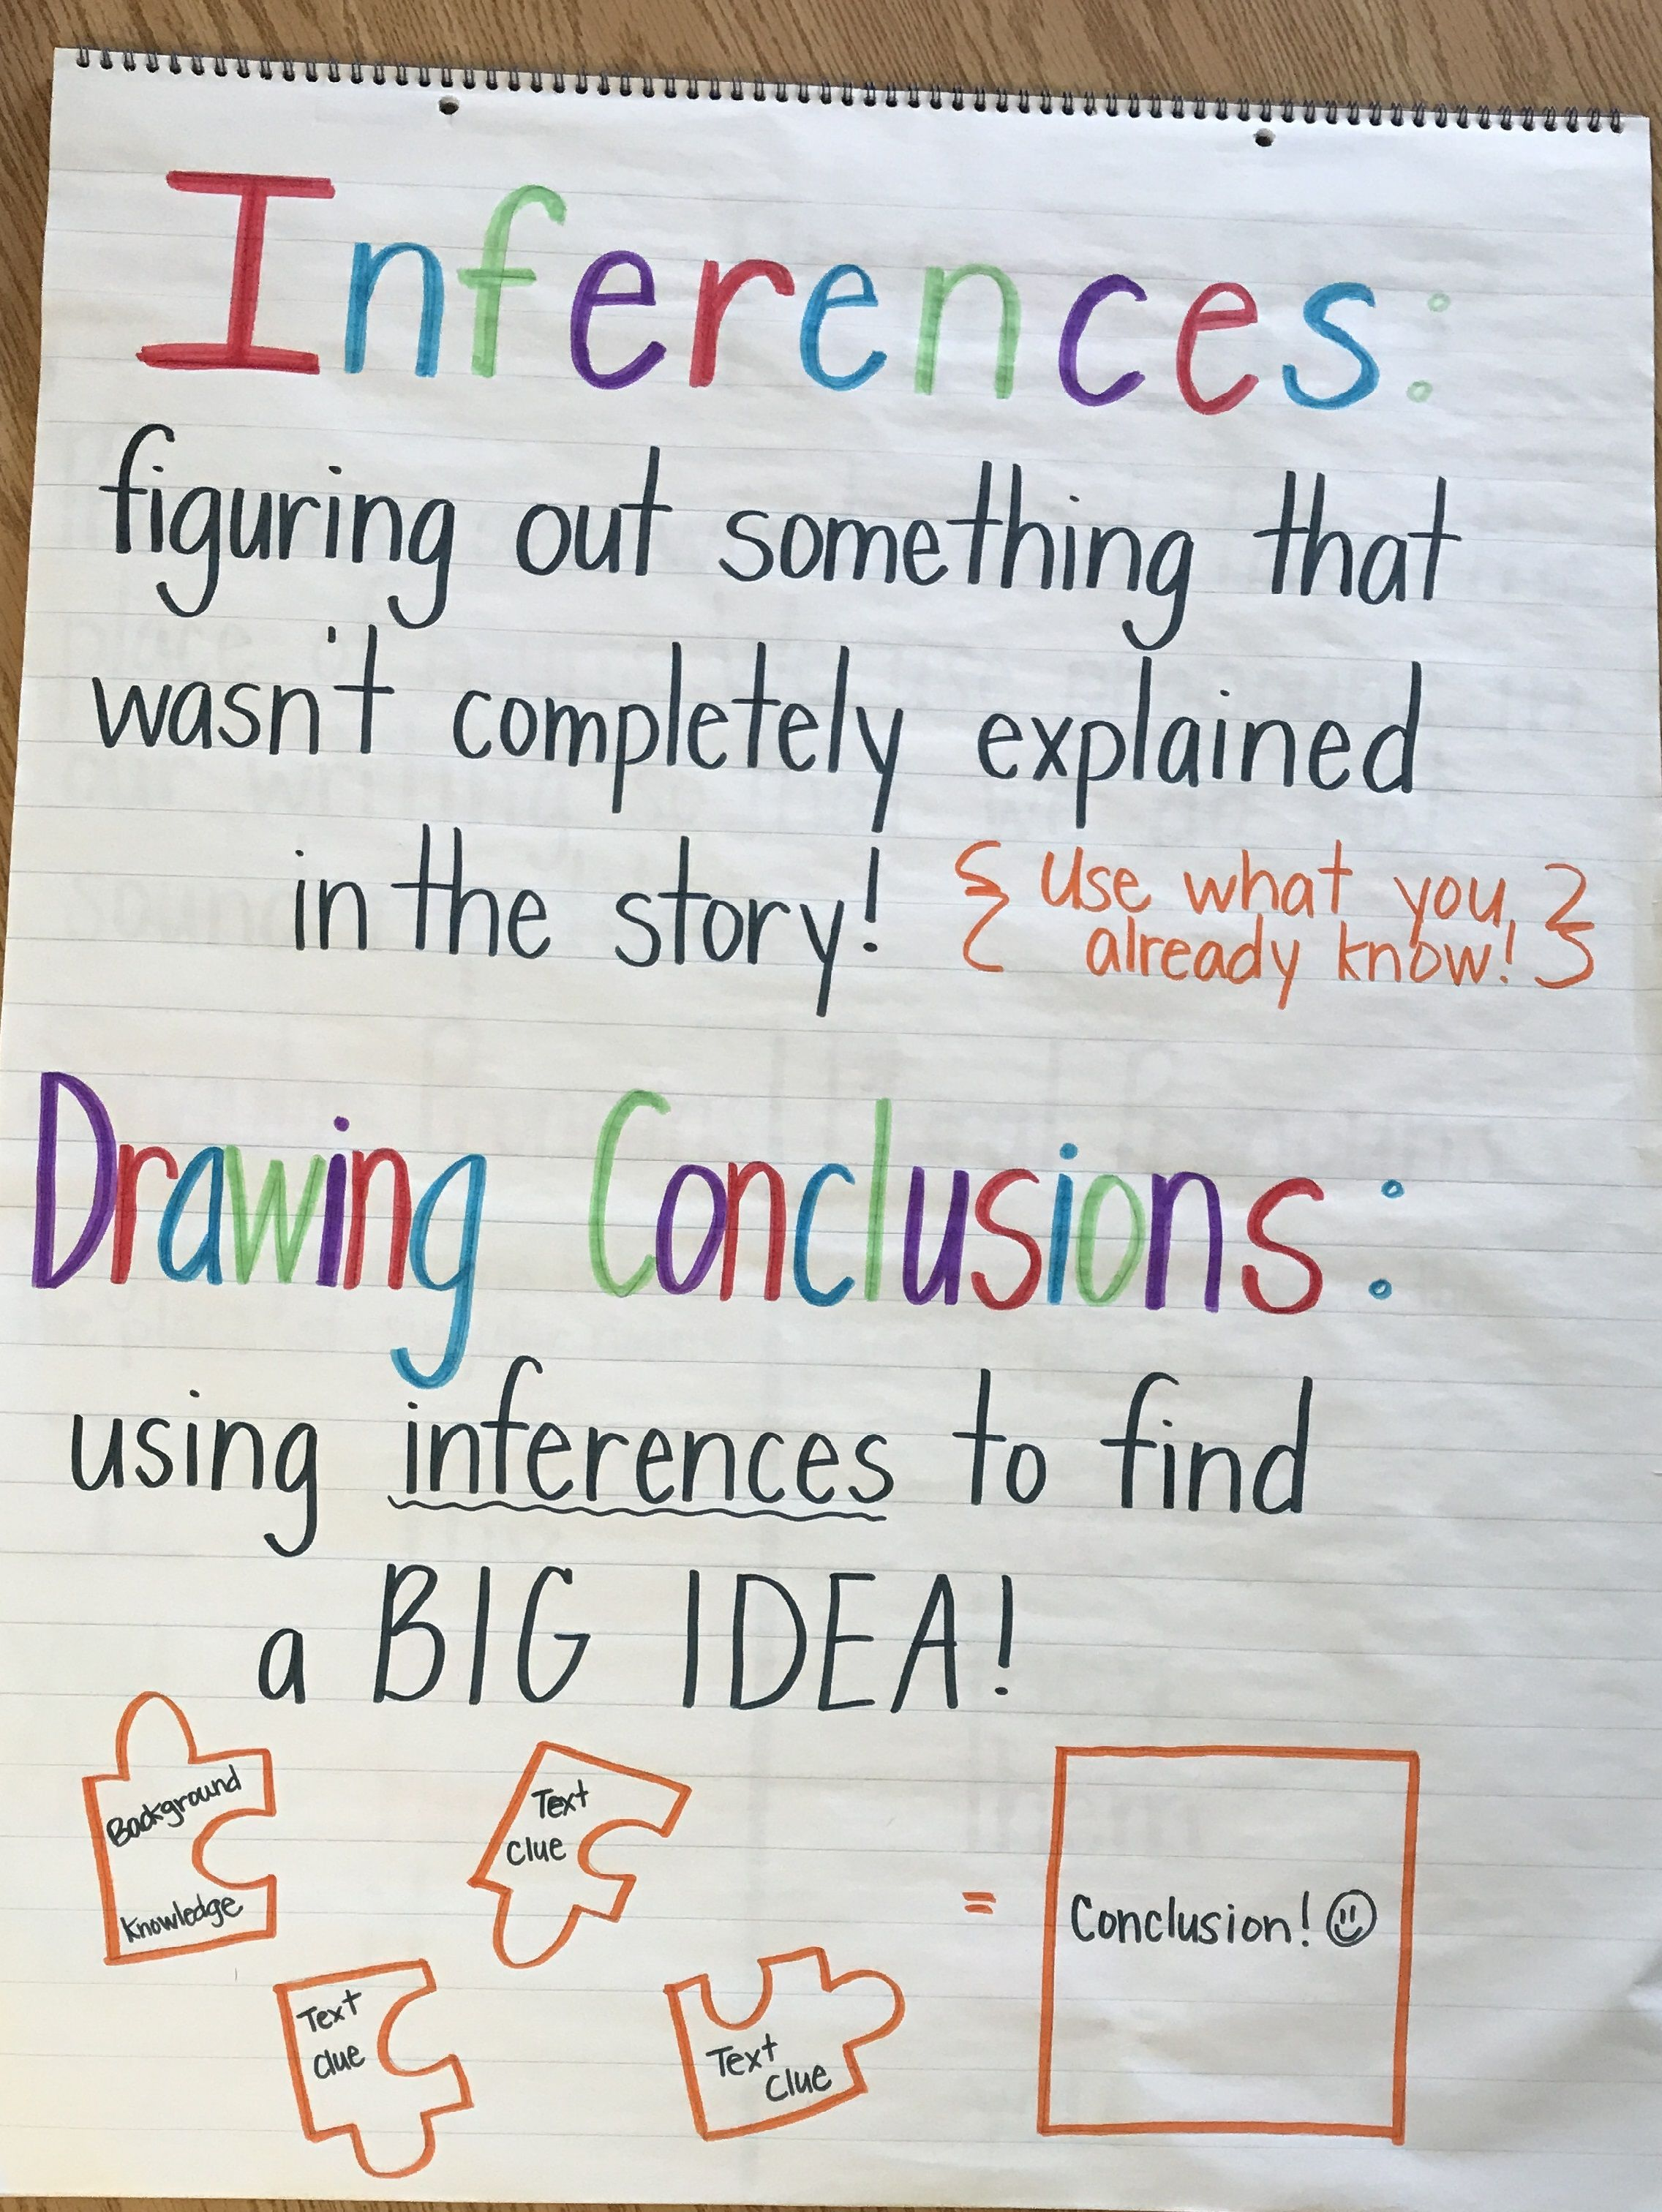 Pin by kim destefano on teaching ideas pinterest drawing conclusions inference and anchor charts also rh